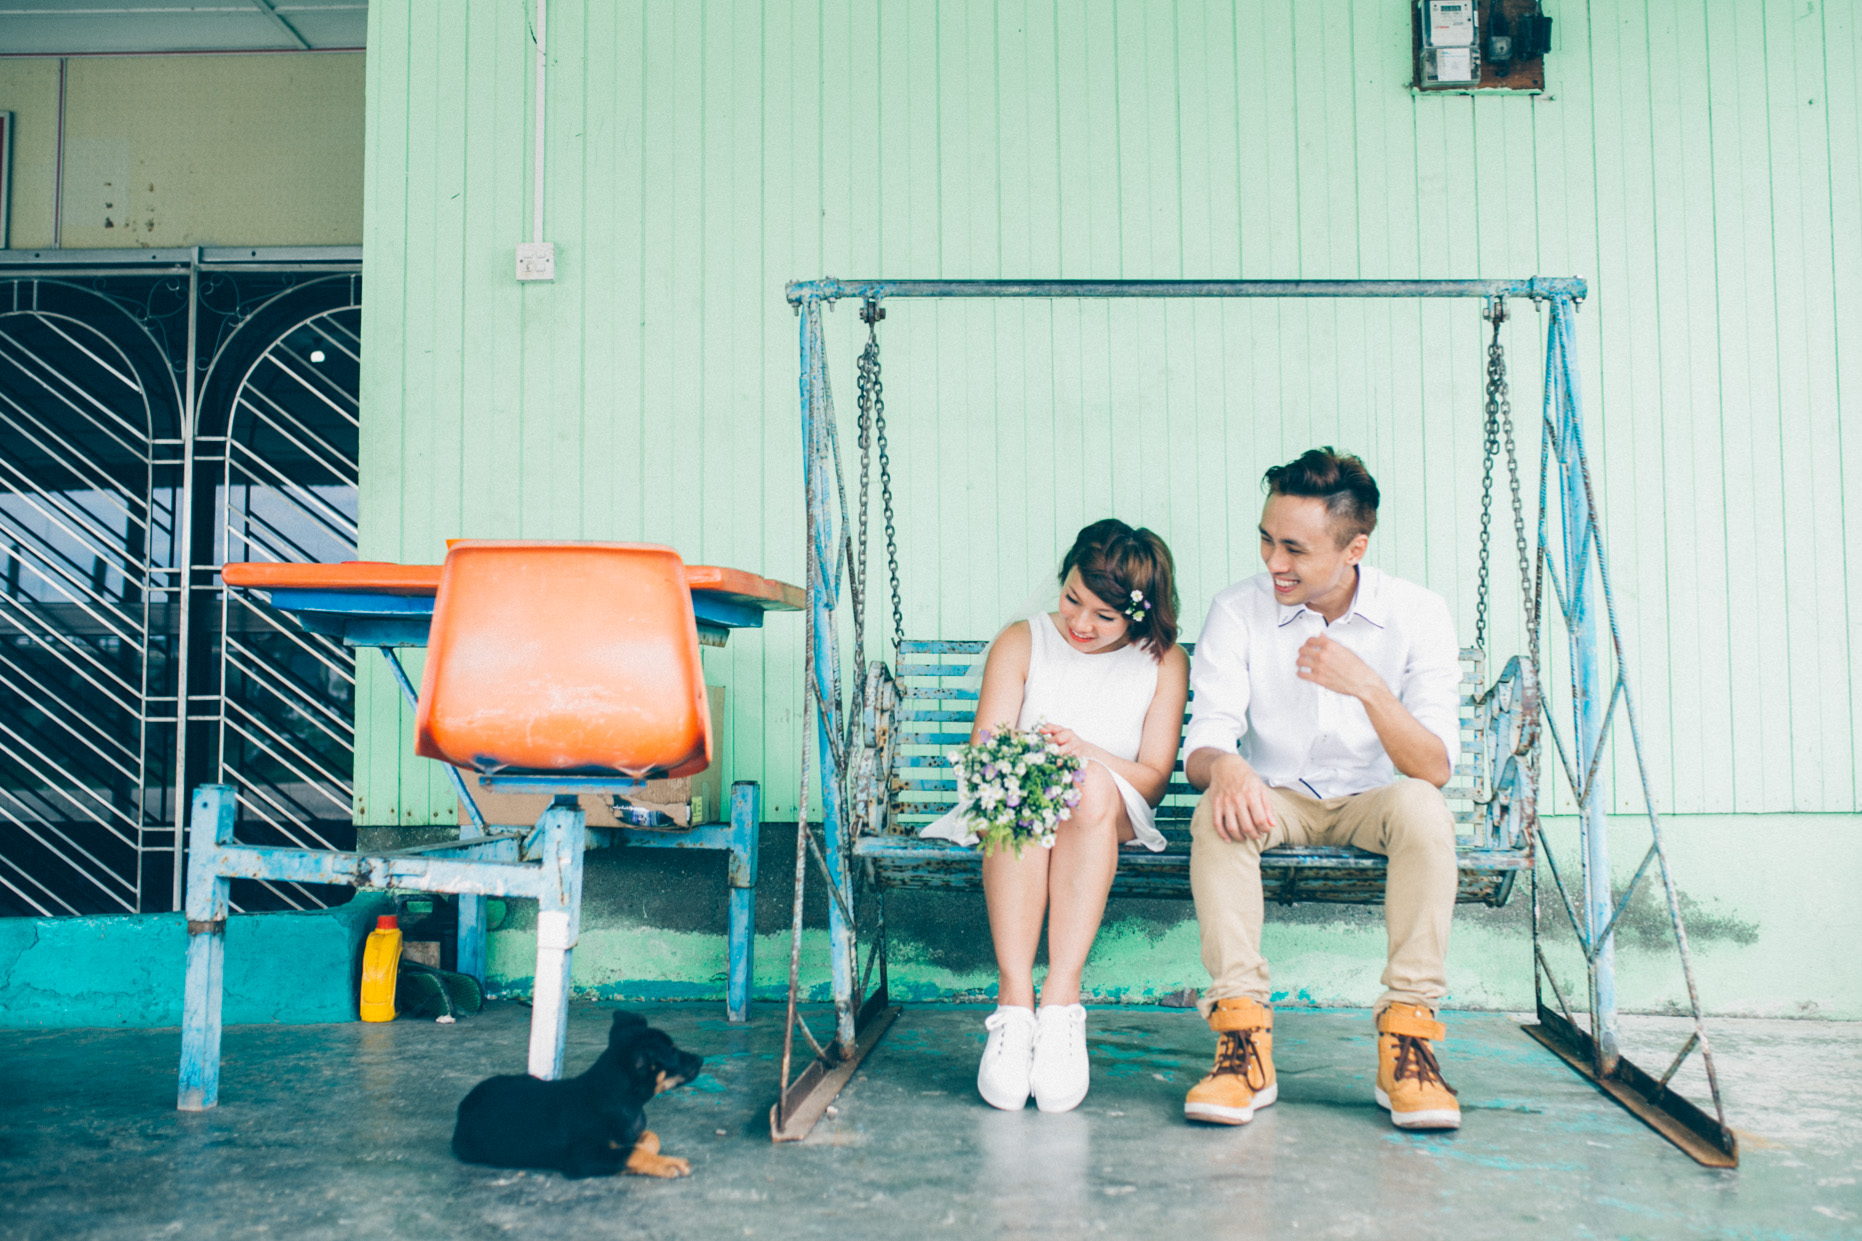 48-hellojanelee-singapore-malaysia-wedding-photographer-prewedding-carrie-sekinchan